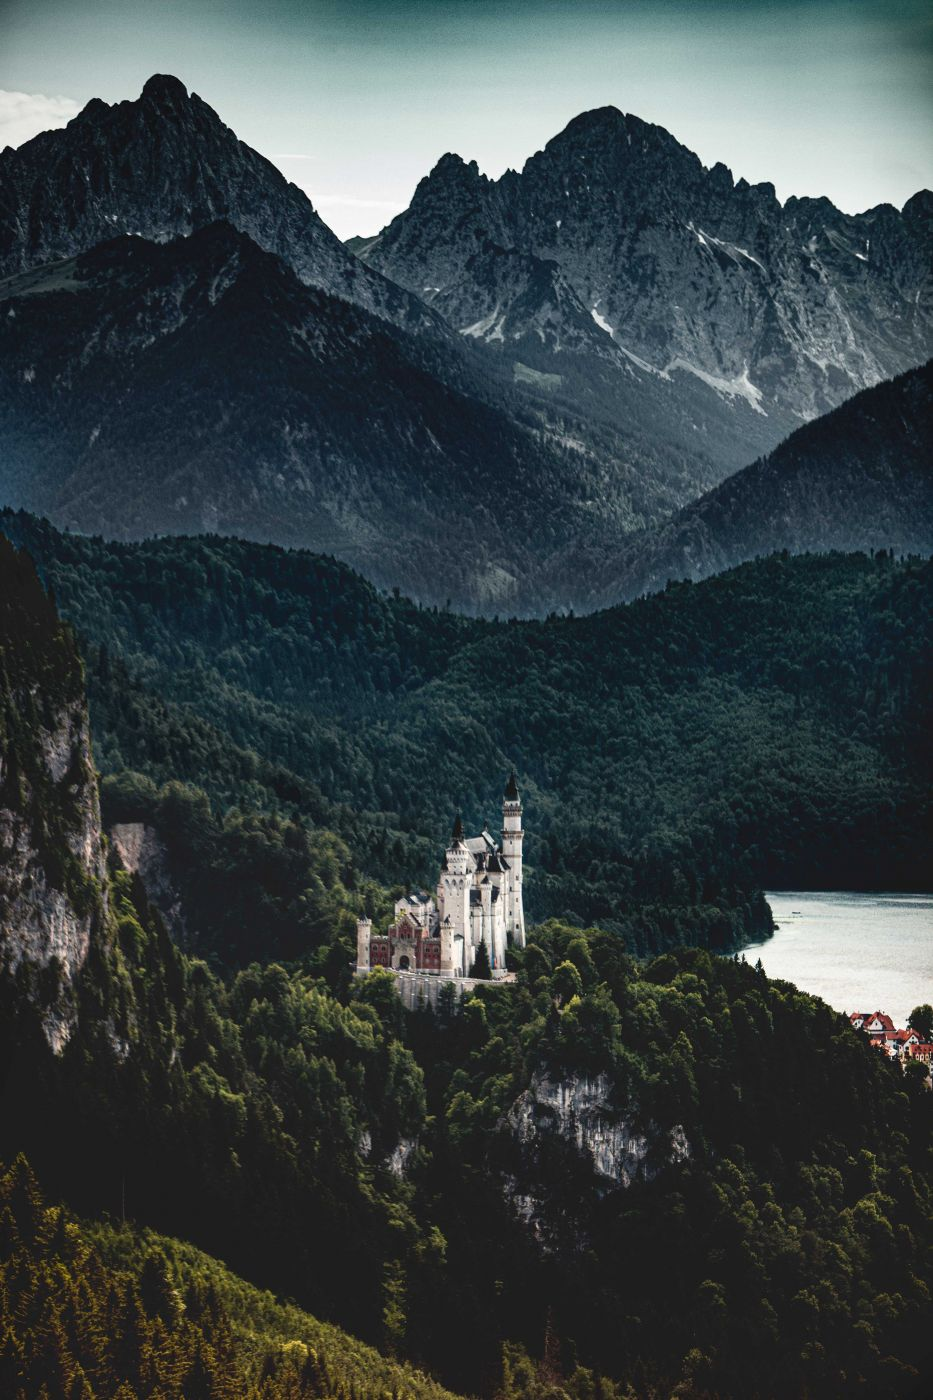 Great view of Neuschwanstein, Germany